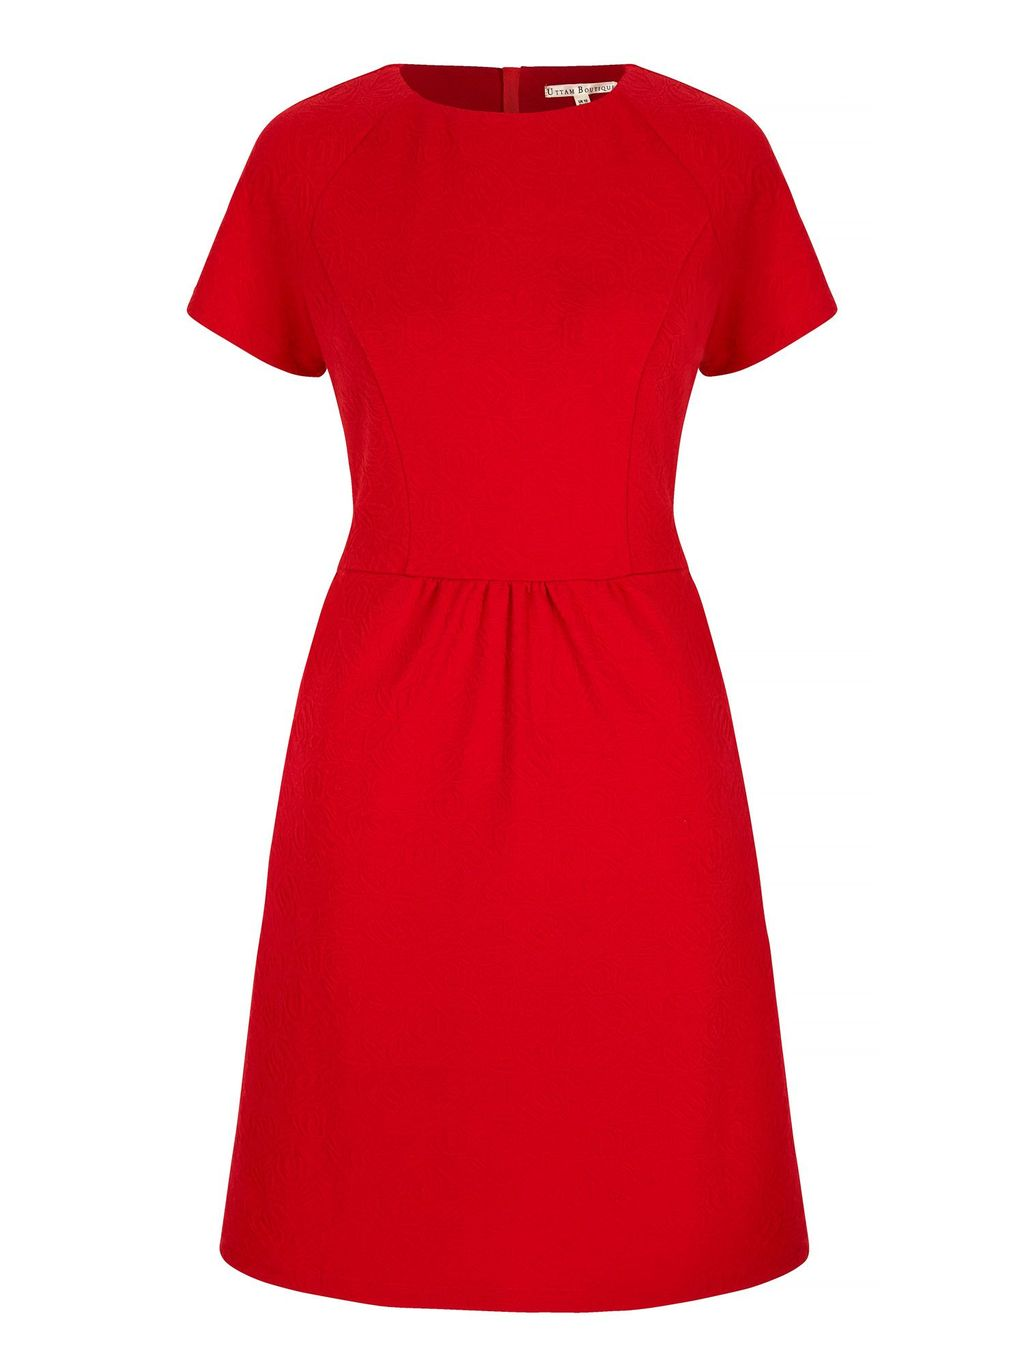 Textured Ponte Day Dress, Red - pattern: plain; predominant colour: true red; length: on the knee; fit: fitted at waist & bust; style: fit & flare; fibres: polyester/polyamide - stretch; neckline: crew; sleeve length: short sleeve; sleeve style: standard; pattern type: fabric; texture group: other - light to midweight; occasions: creative work; season: s/s 2016